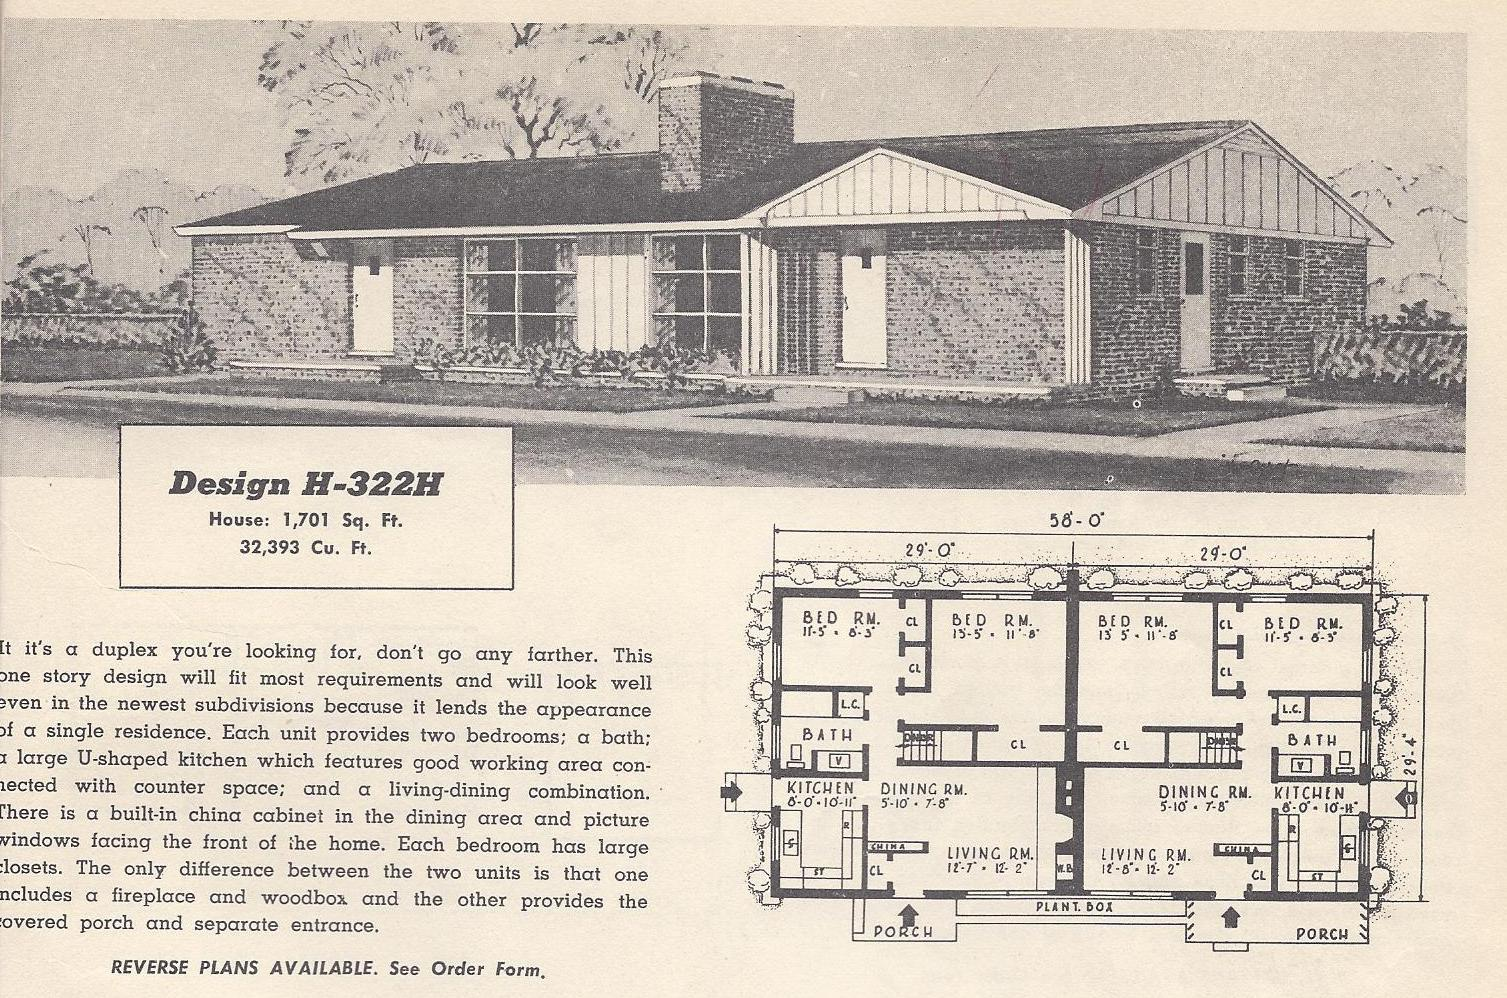 Vintage house plans 322h antique alter ego for Vintage floor plans